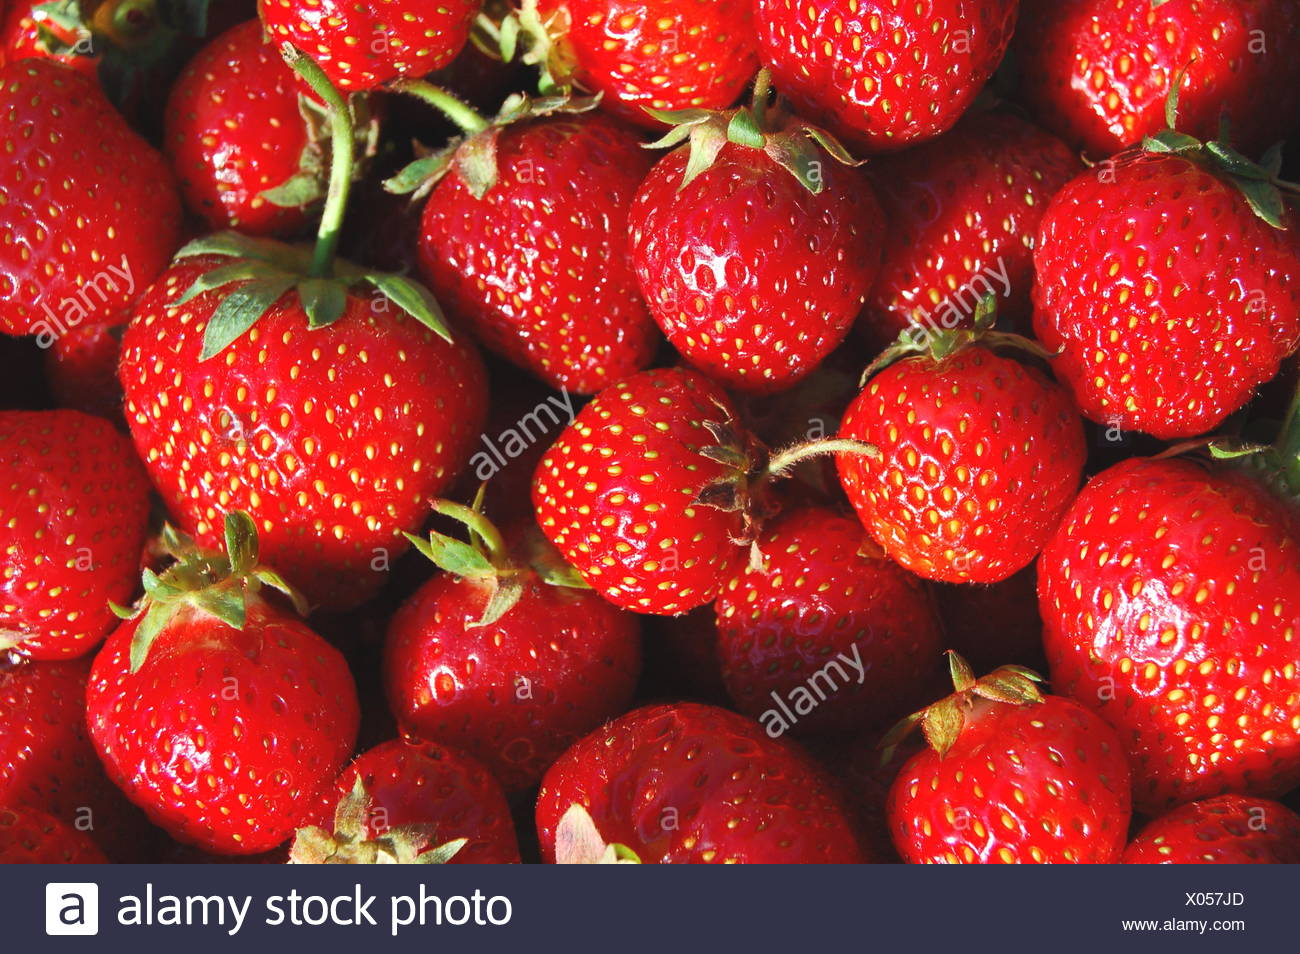 soft spring bouncing bounces hop skipping frisks jumping jump fruit strawberry juicy red food aliment health eco sweet green - Stock Image